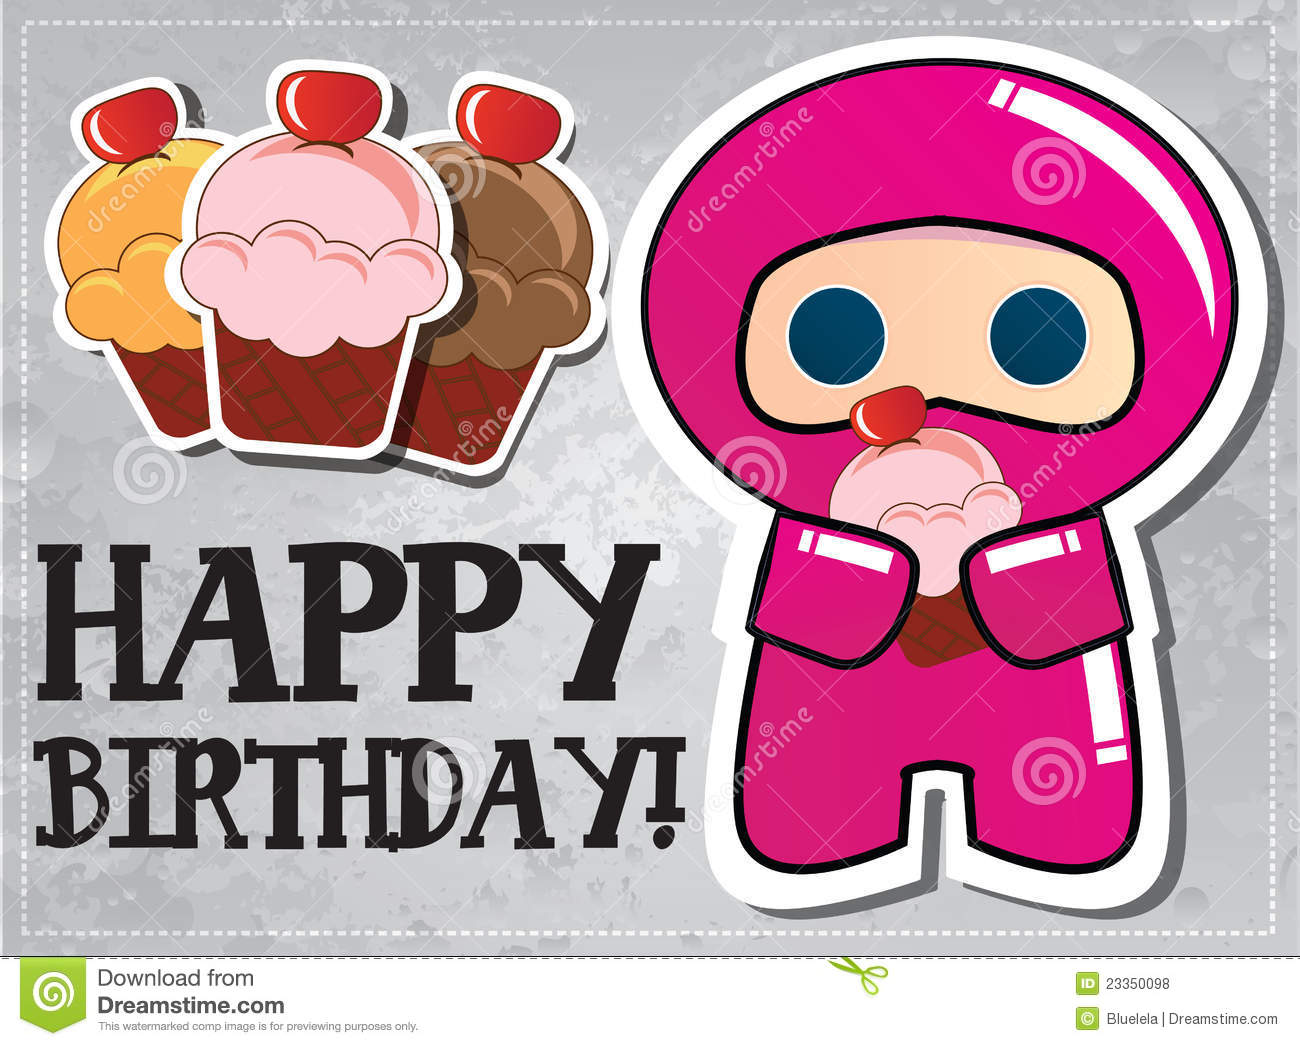 Happy Birthday Card With Cute Cartoon Ninja Images Image – Cartoon Birthday Greetings